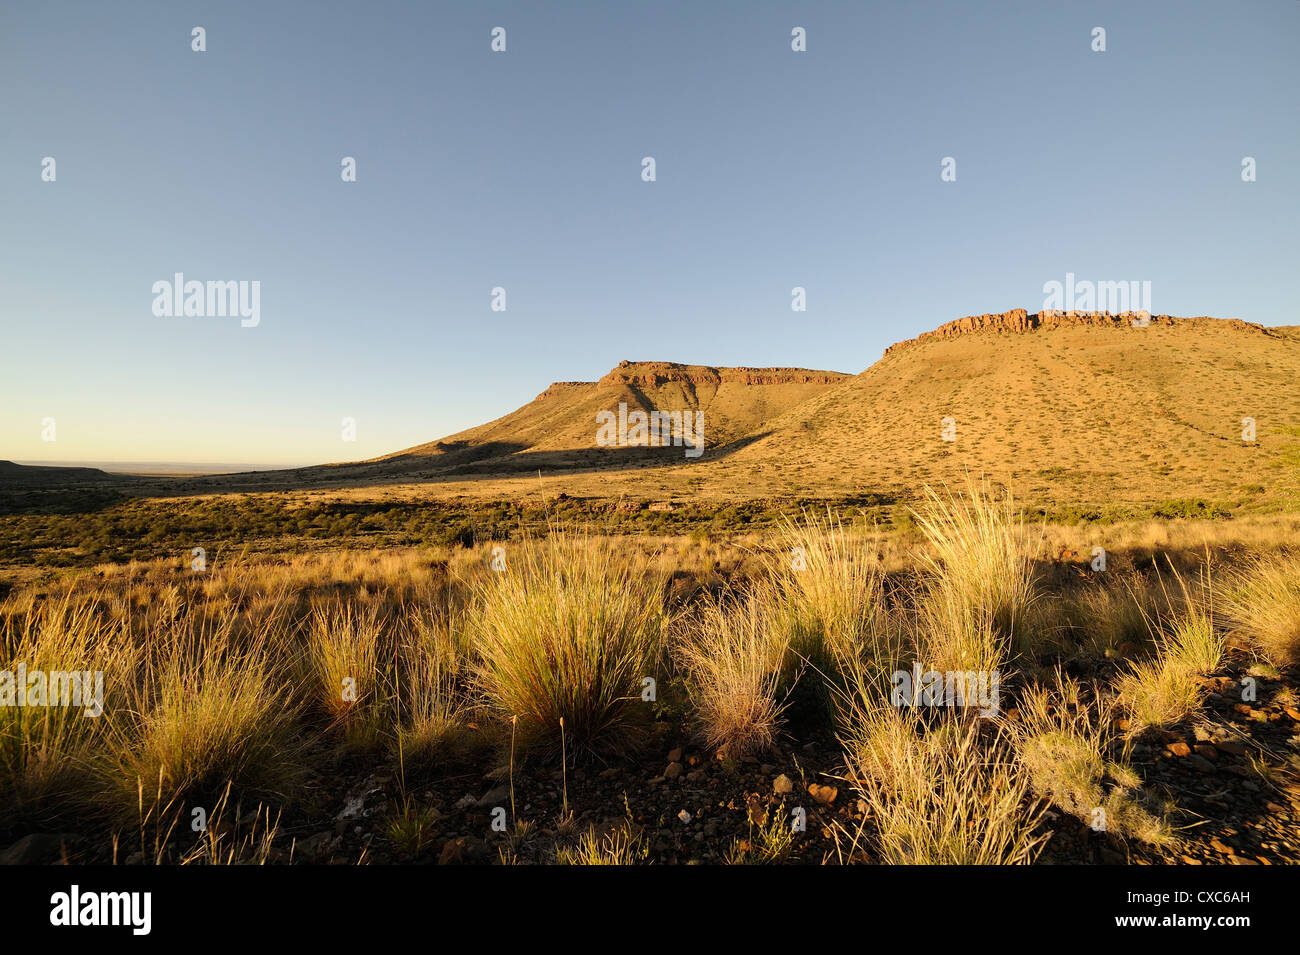 Early morning in the Karoo National Park, South Africa, Africa - Stock Image